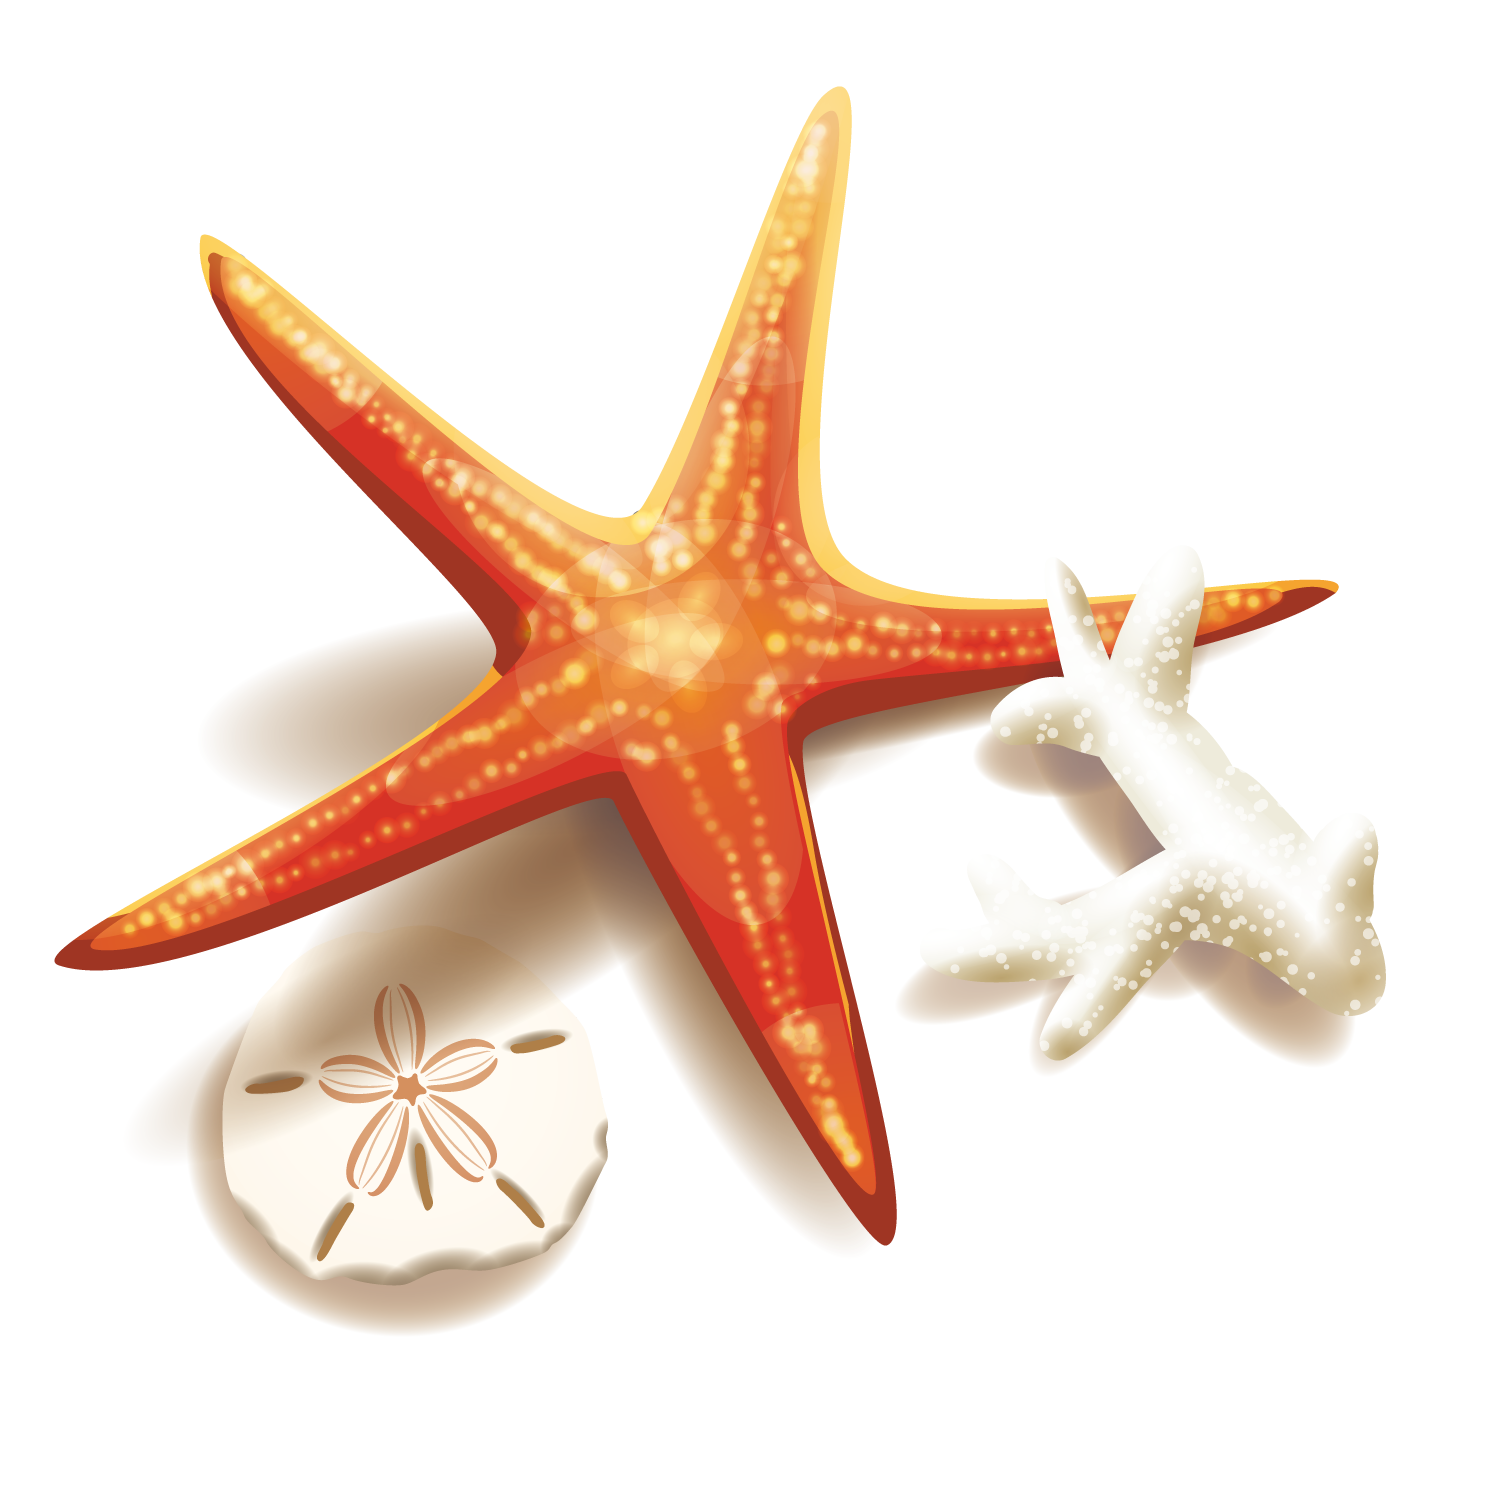 And Coral Starfish Illustration Stock Free Clipart HD PNG Image